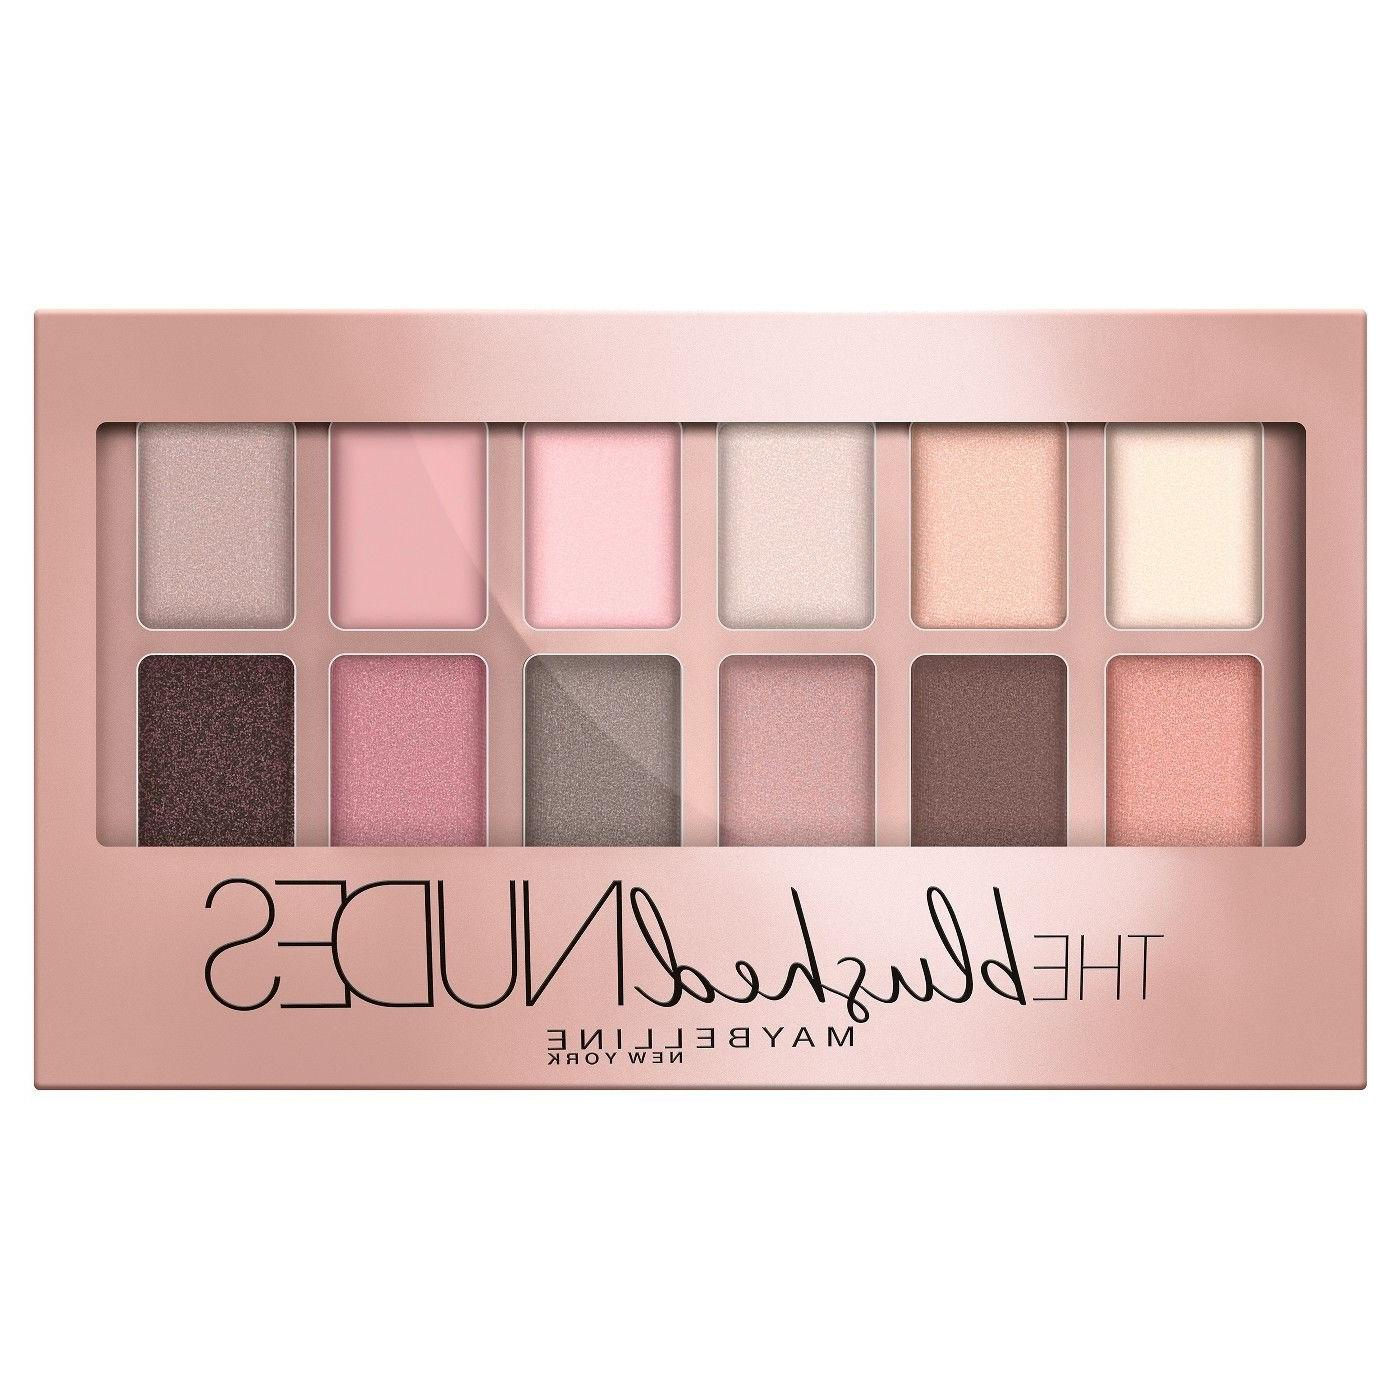 maybelline palette you choose your palette